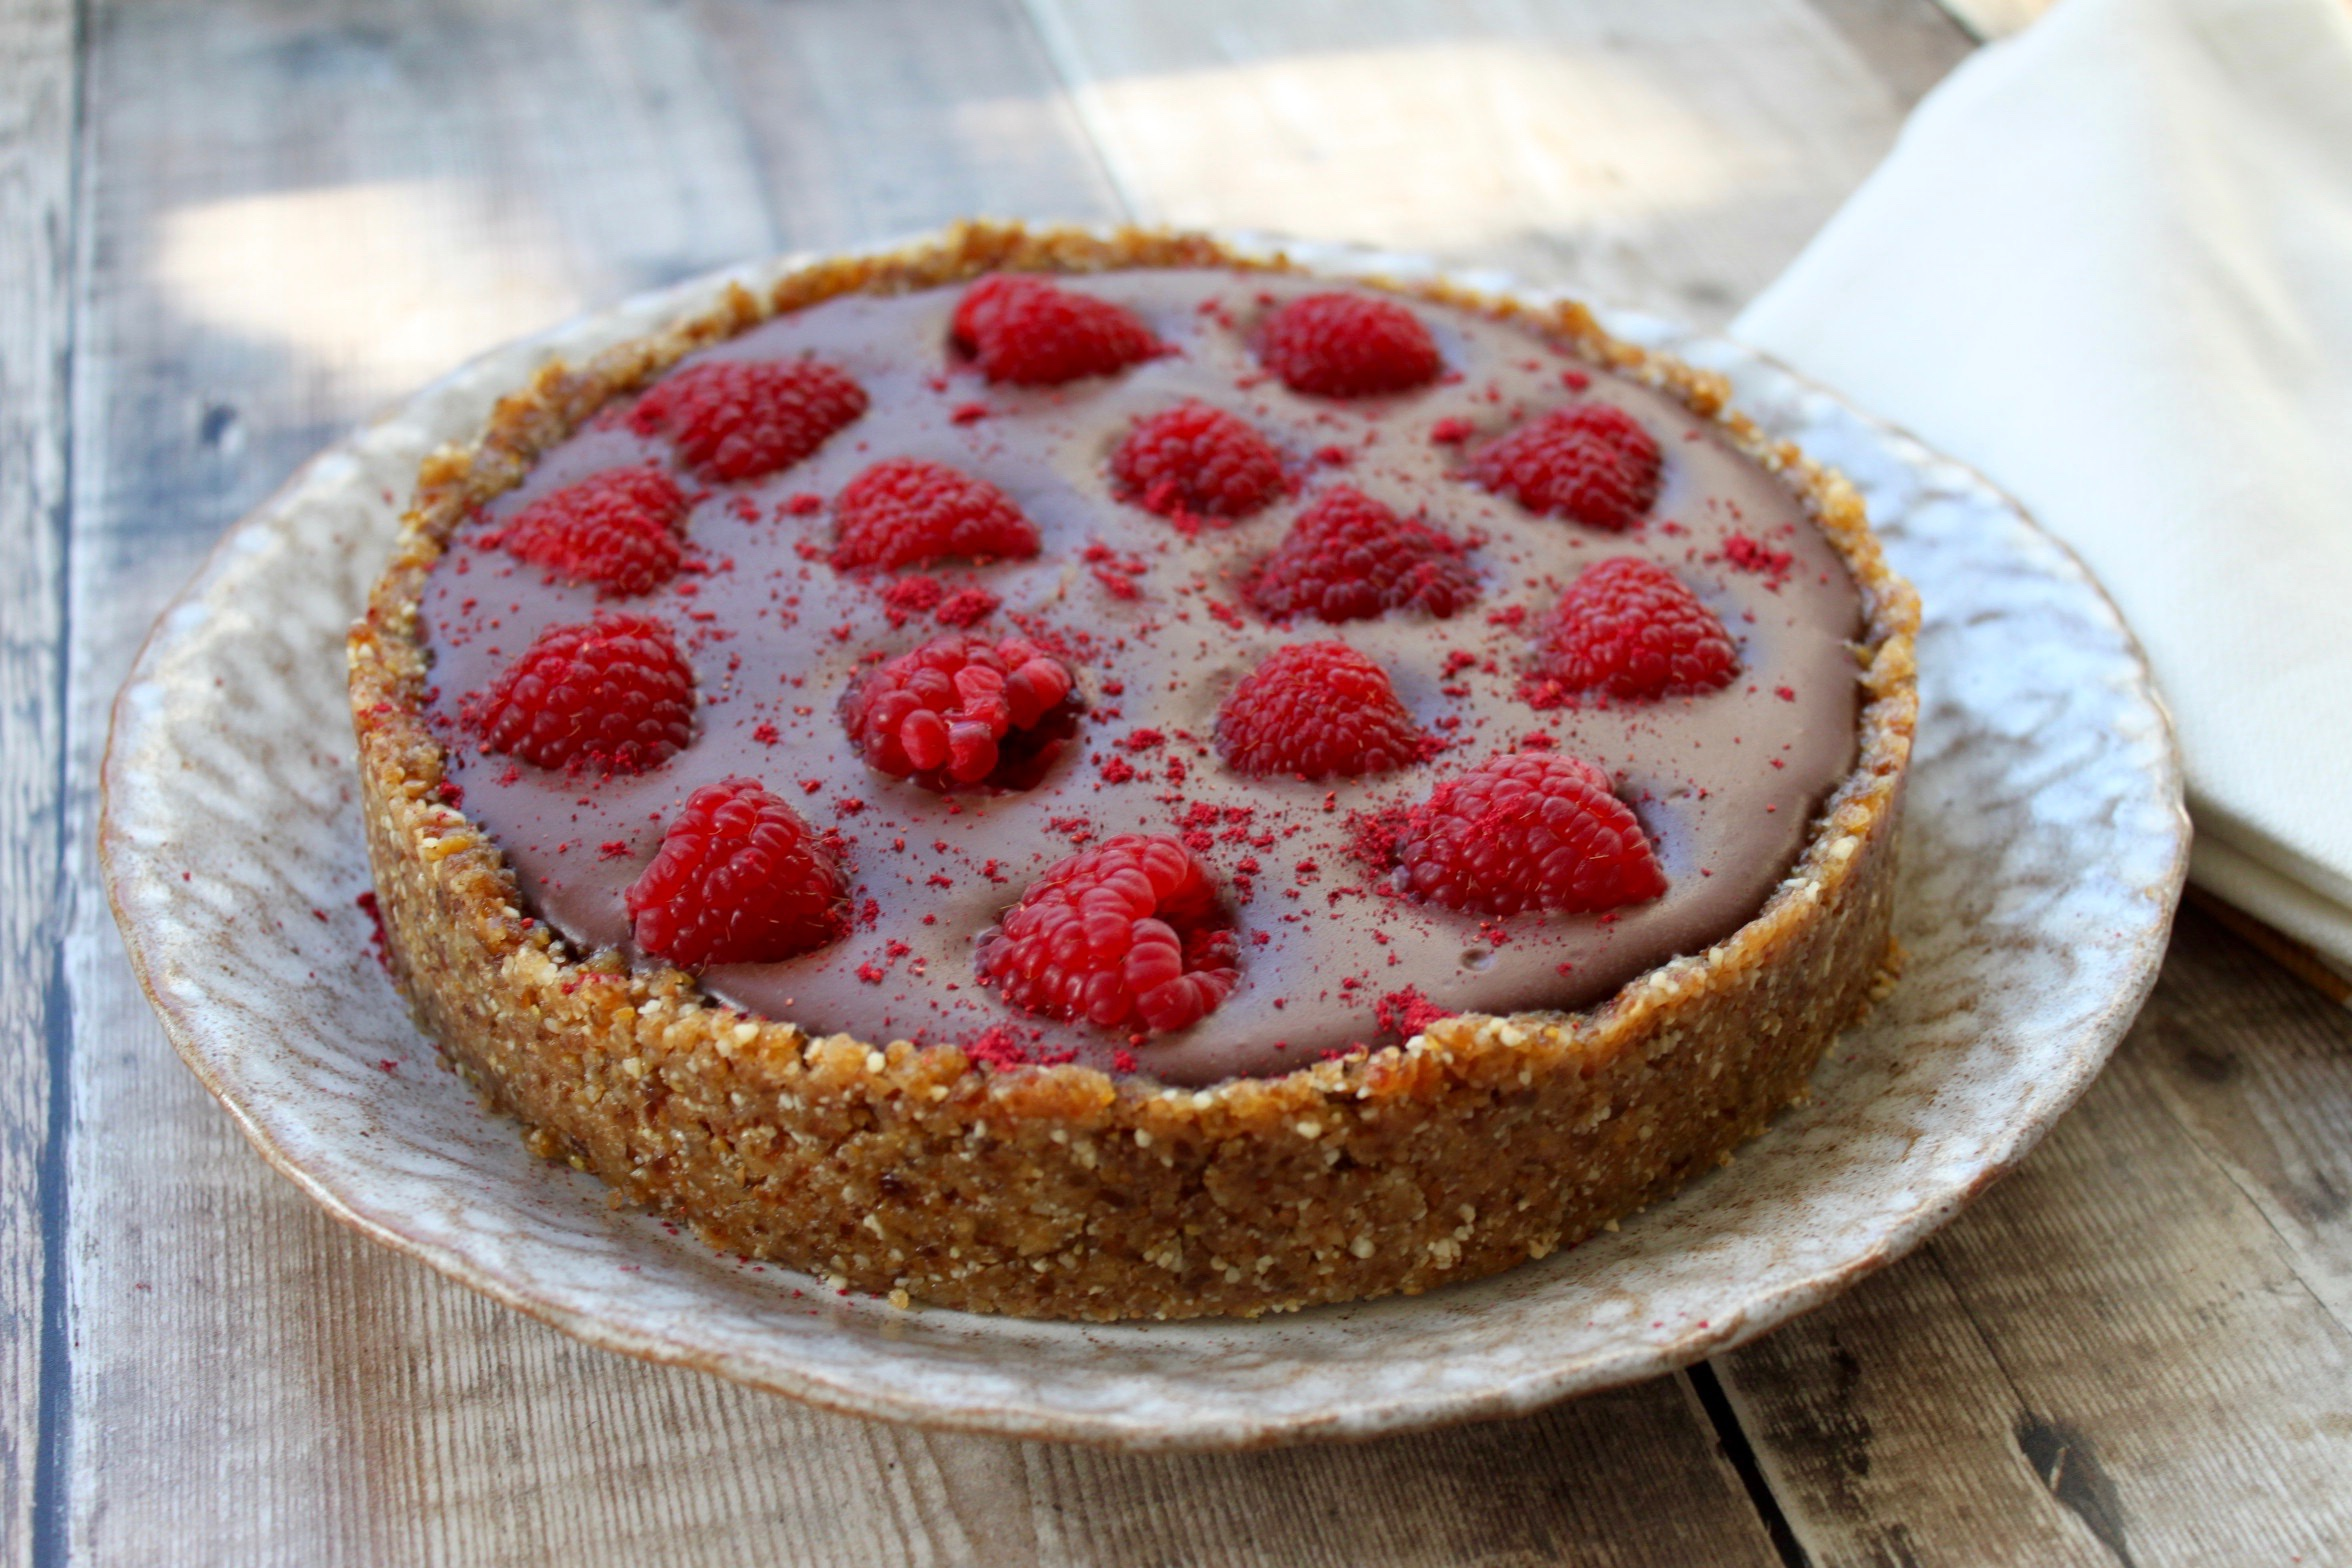 Chocolate+%26+Raspberry+Tart+Nourish+by+Rebecca.jpg